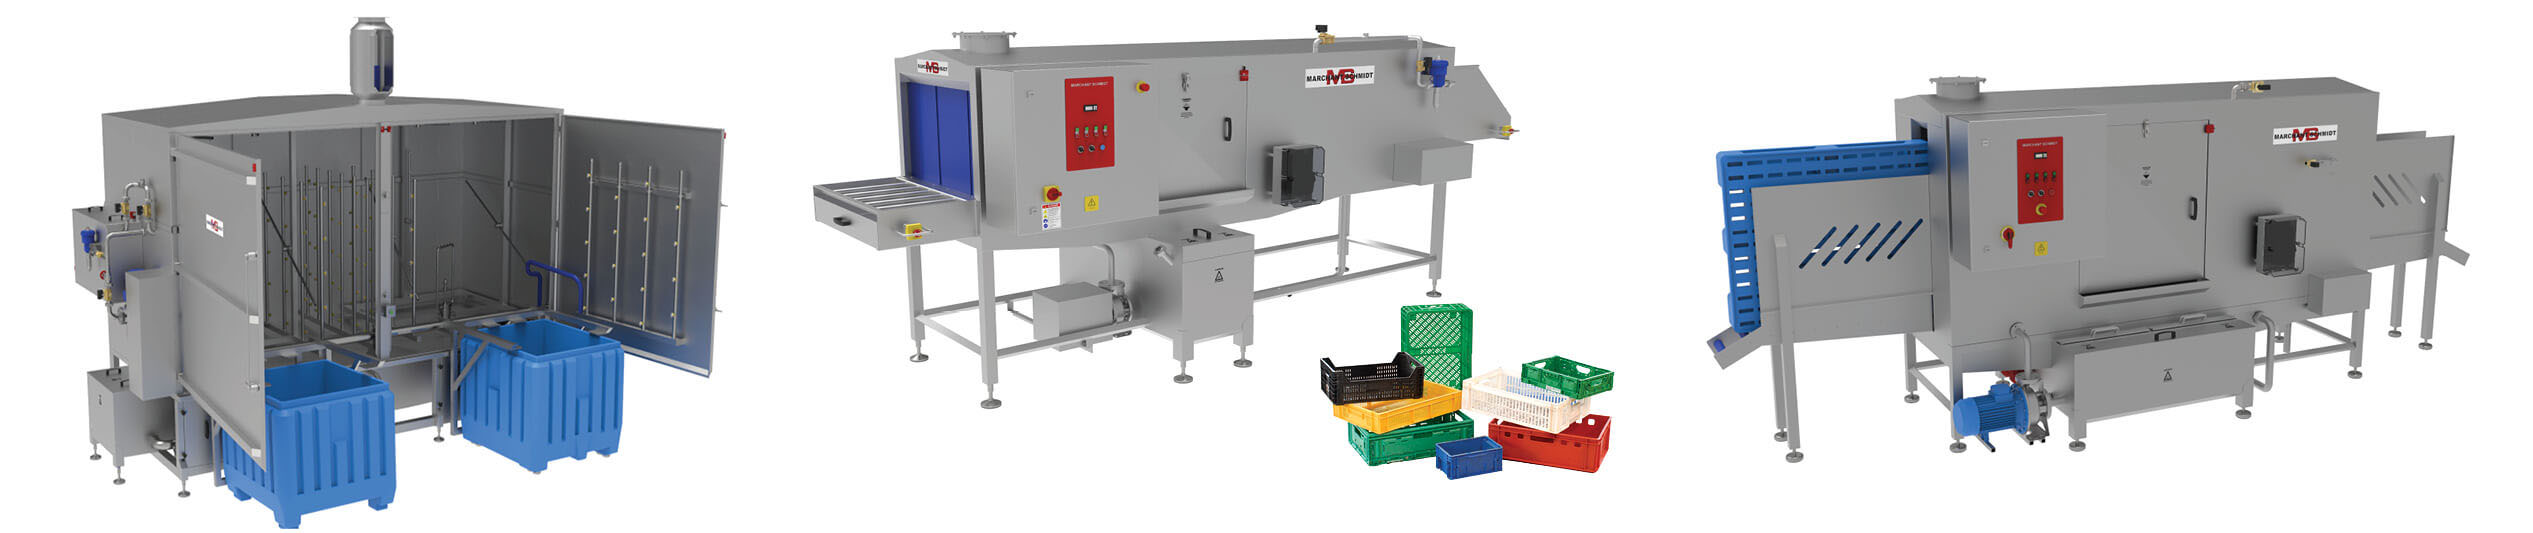 industrial parts washing systems manufactured marchant schmidt